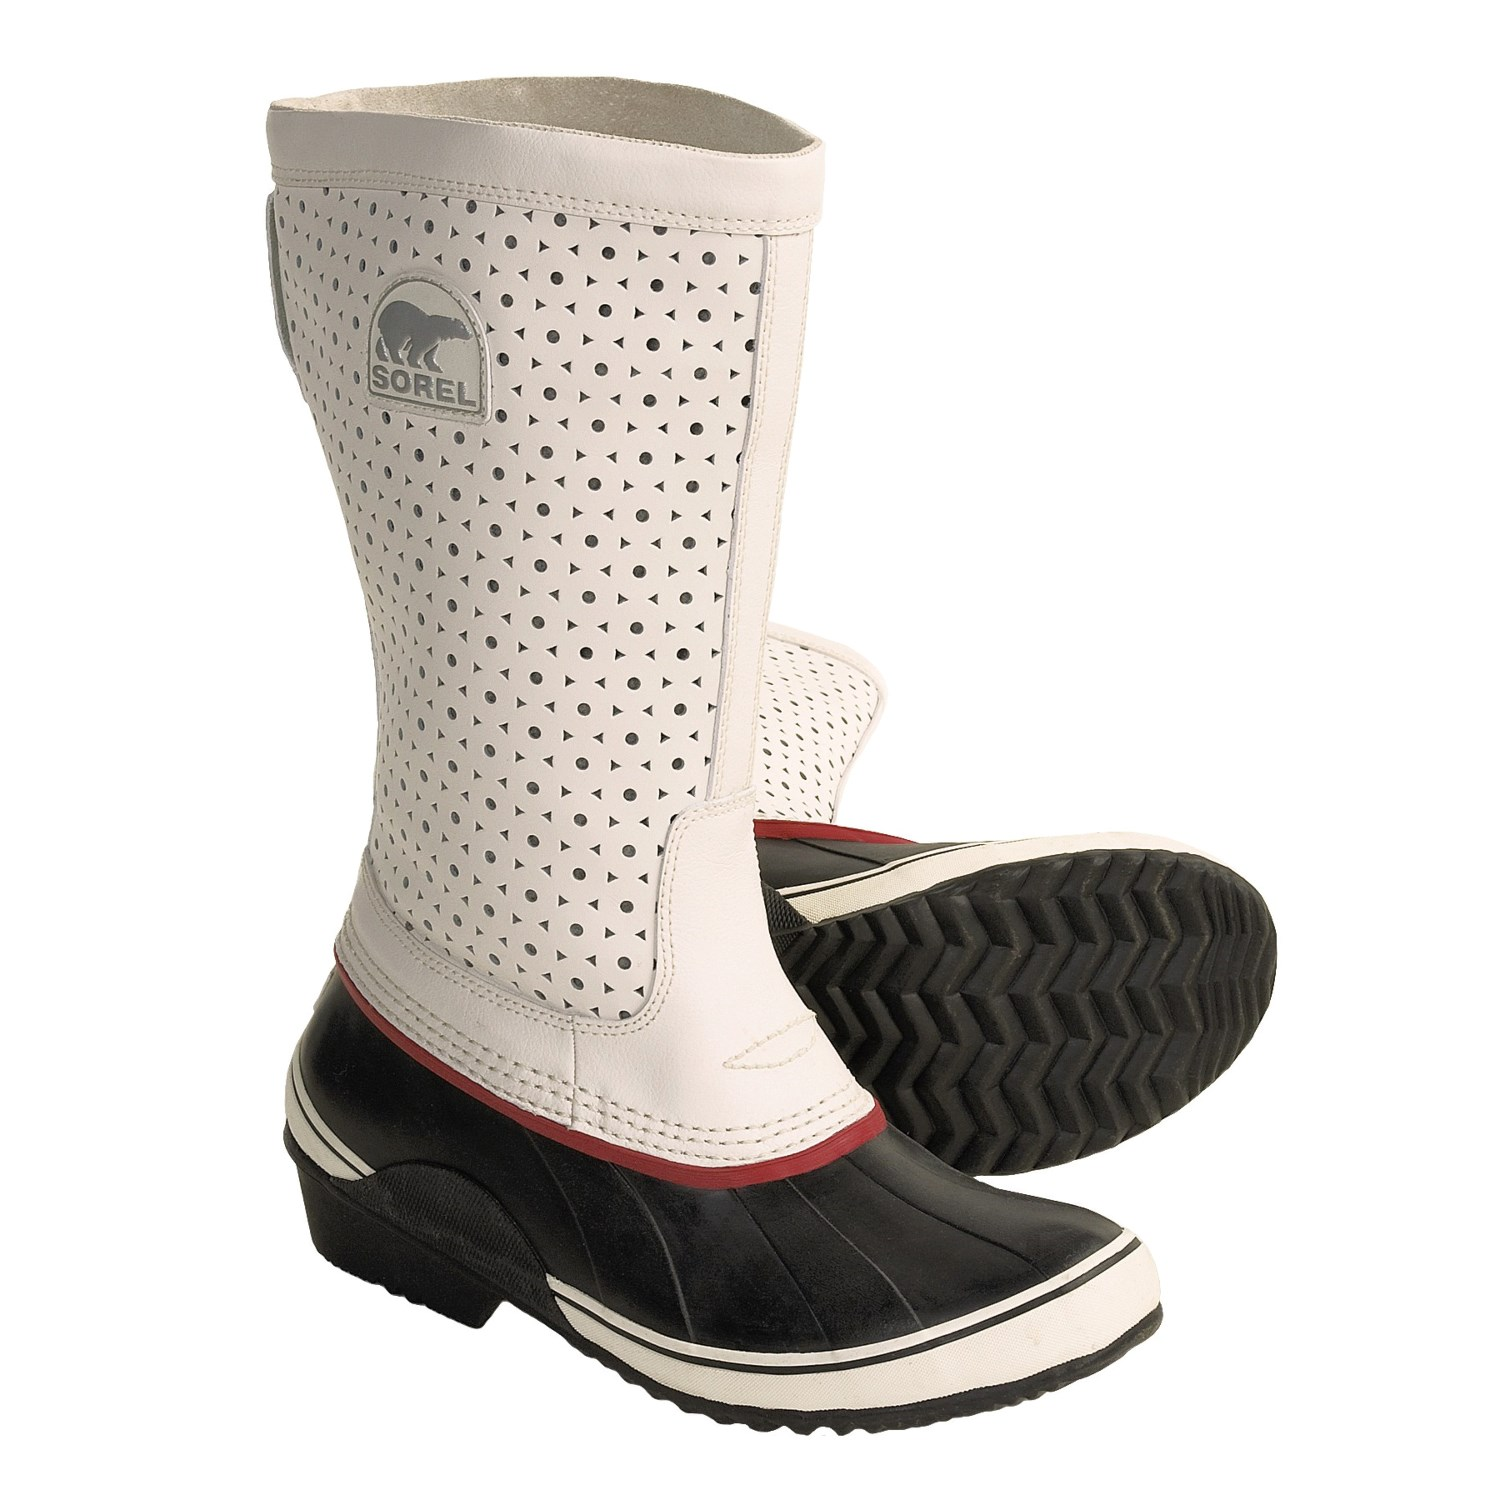 sorel sorelli boots insulated leather rubber for